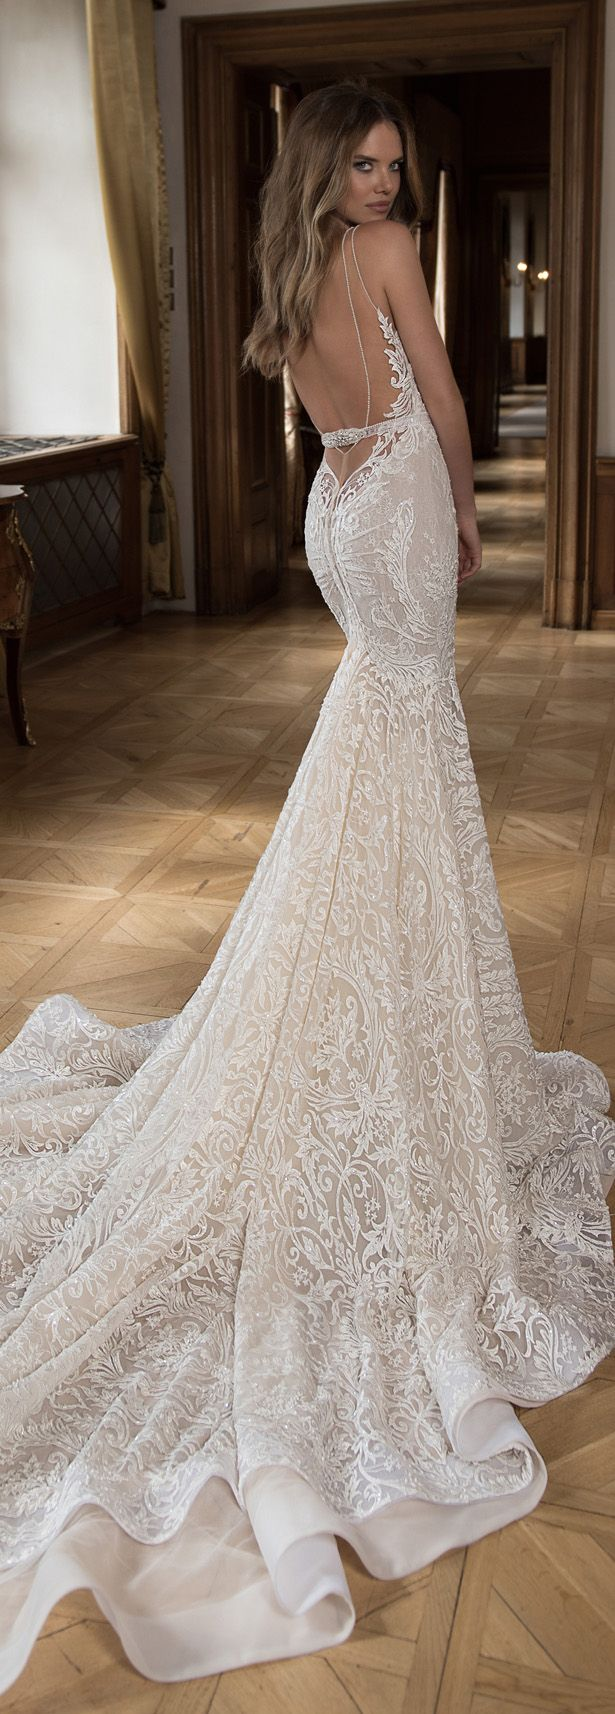 Wedding Dress by Berta Bridal Fall 2015 | this dress is giving me so much life... definitely going dress hunting in Tel Aviv. All my favorite designers are in Israel lol